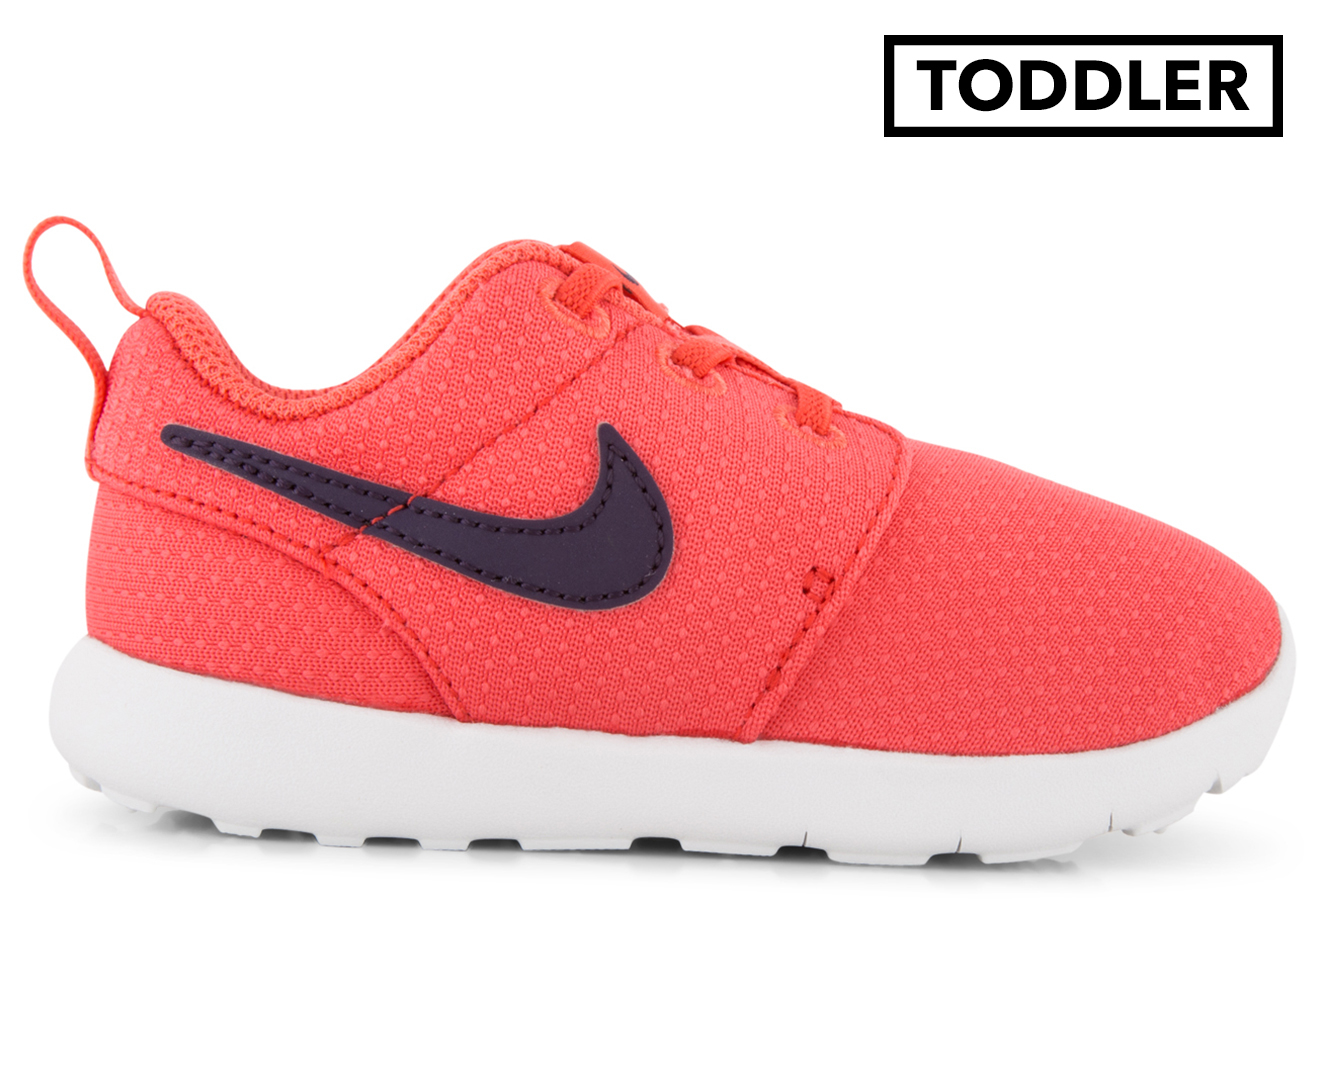 33a3e455f86ab ... low price nike toddler girls roshe one tdv shoe ember glow purple  dynasty pure ceb63 68c00